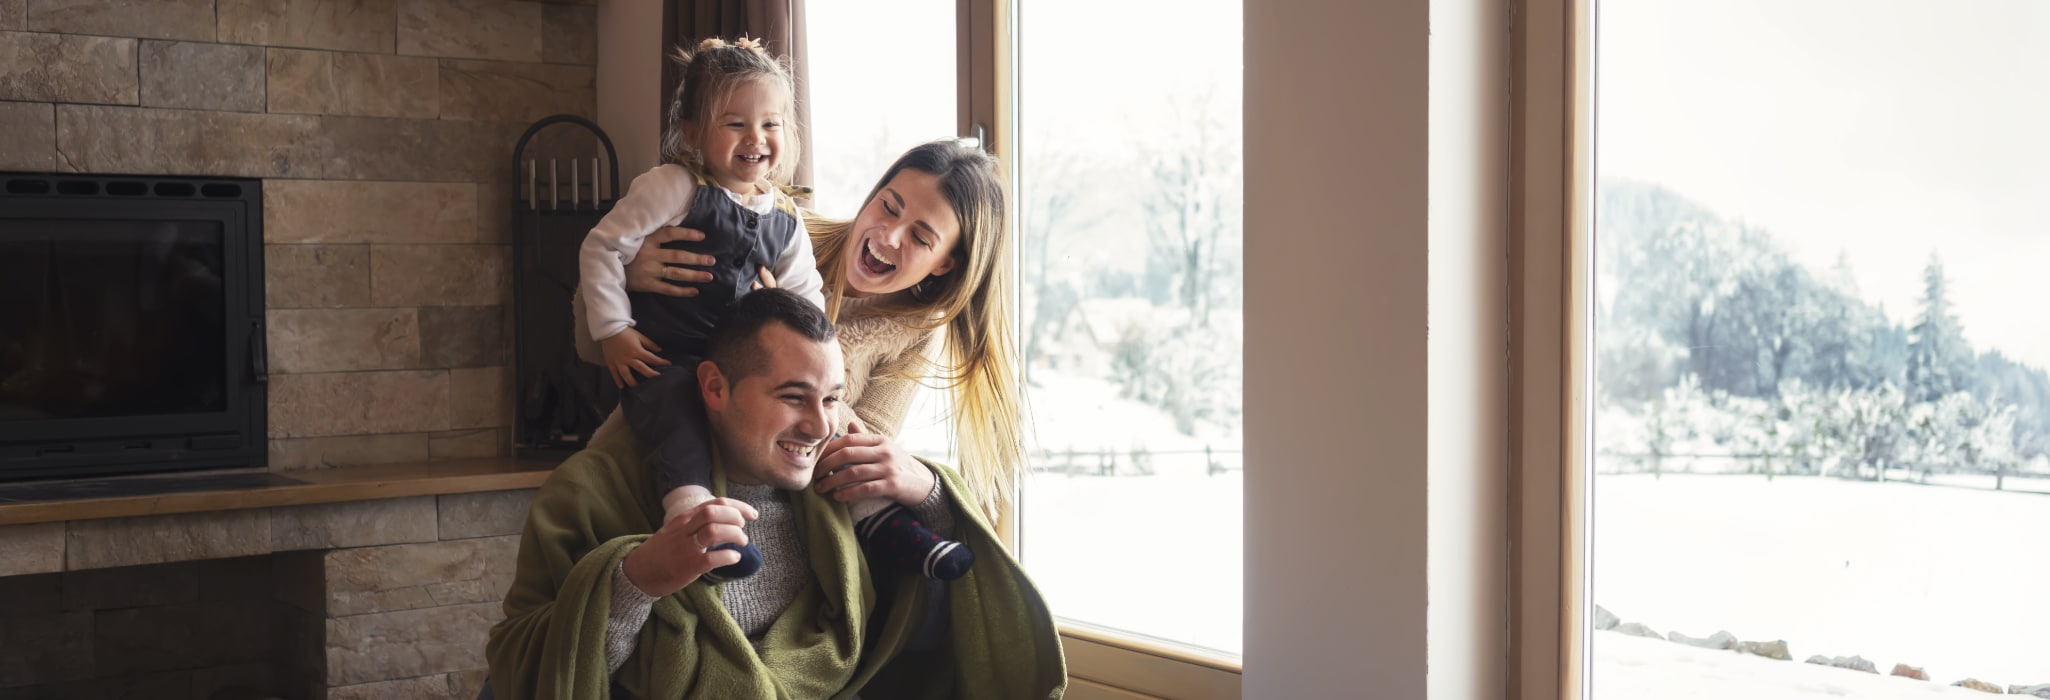 Young family on winter vacation, looking through window